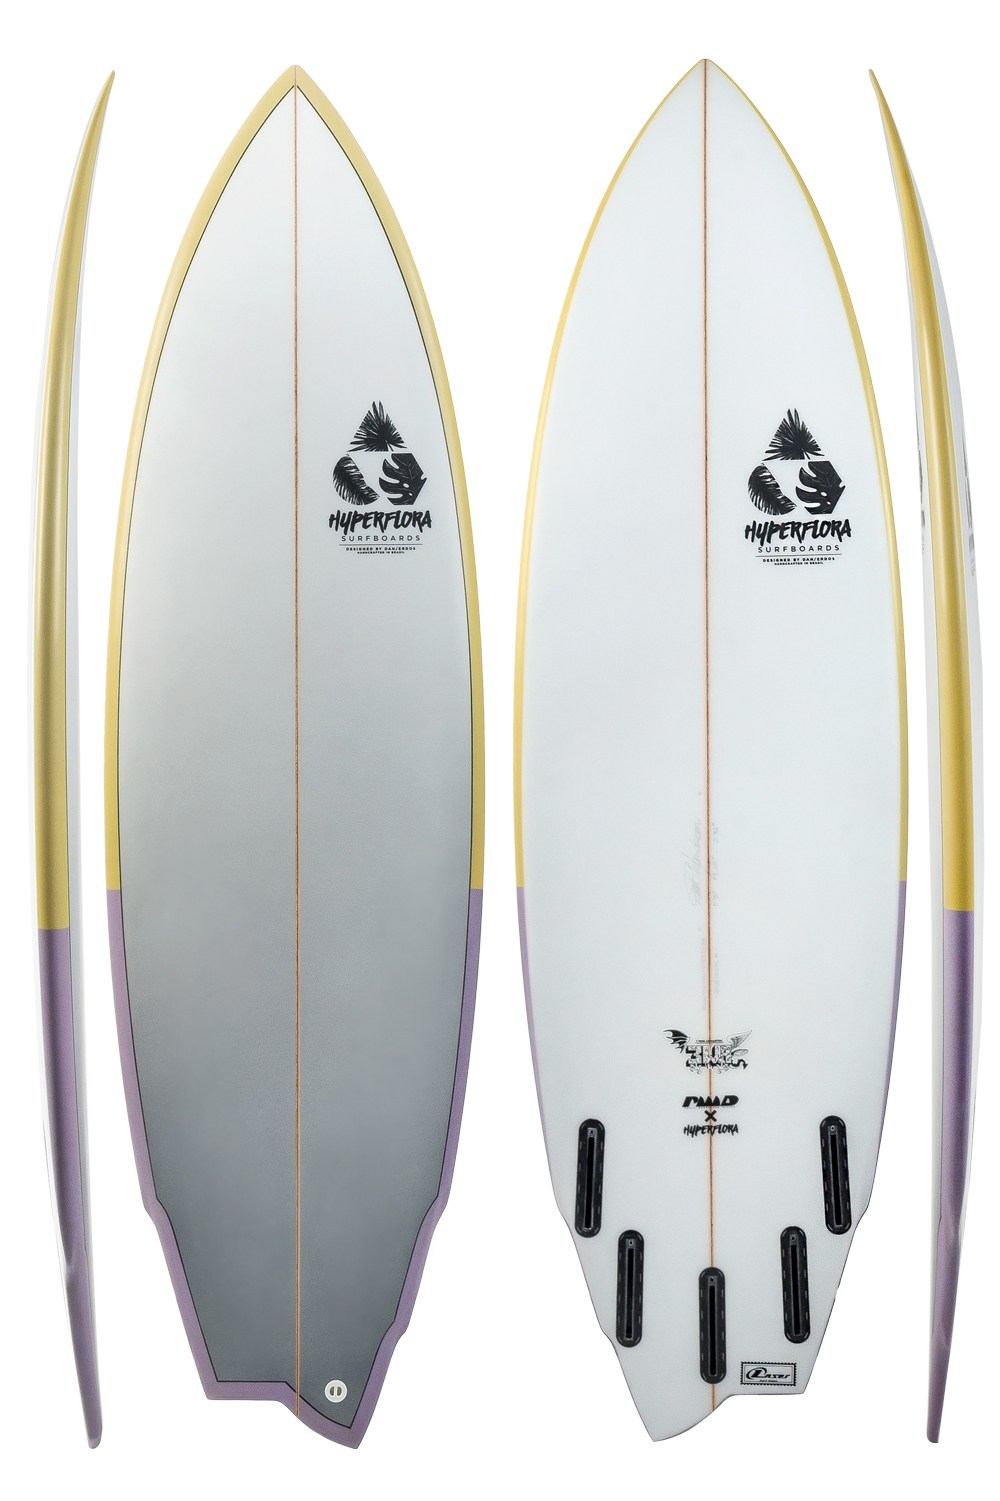 3WA - Assimétrica Regular | Hyperflora Surfboards